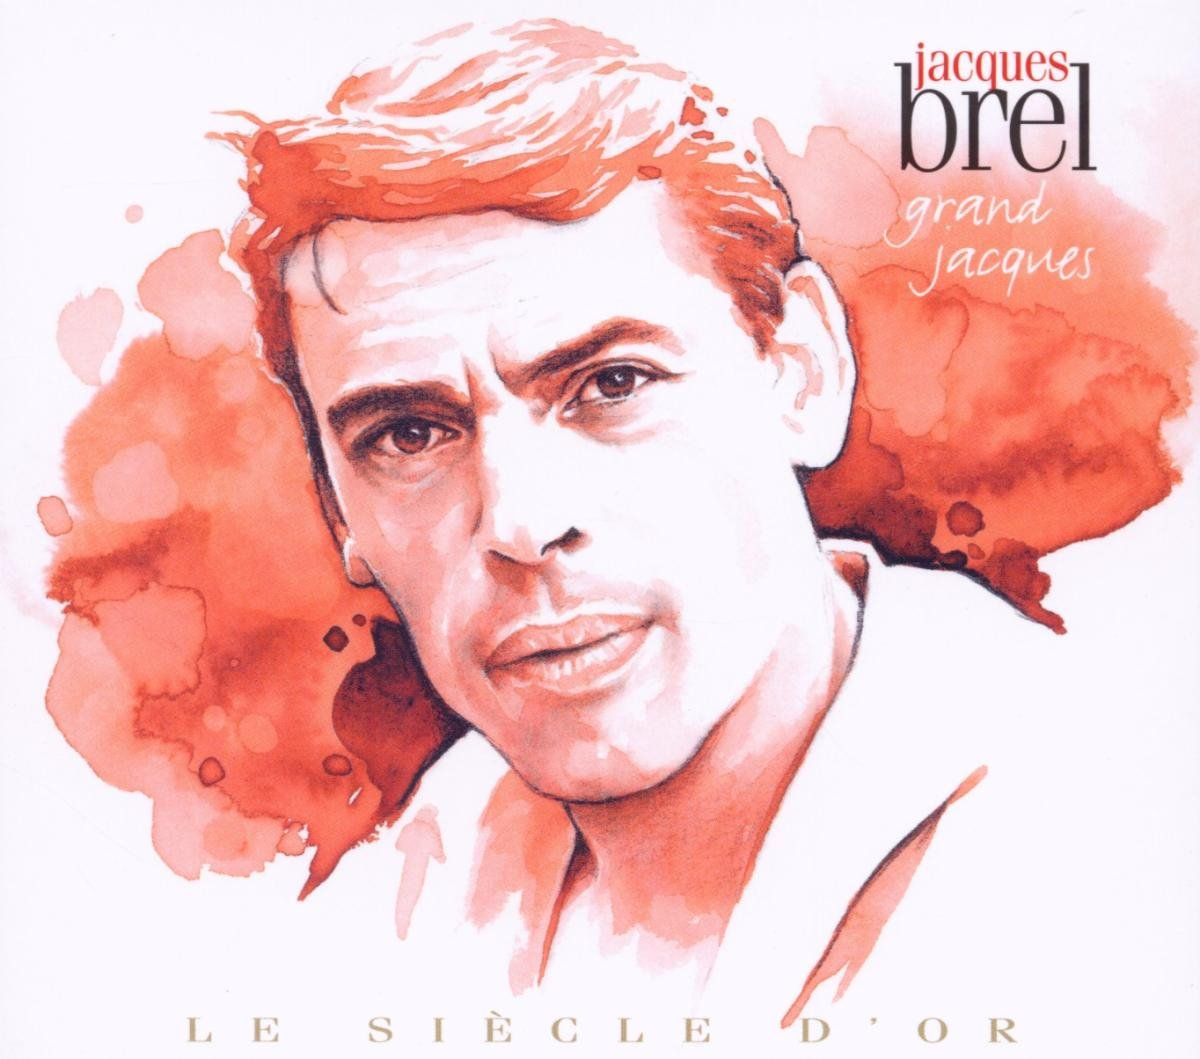 Le Siecle D Or - Jacques Brel kopen